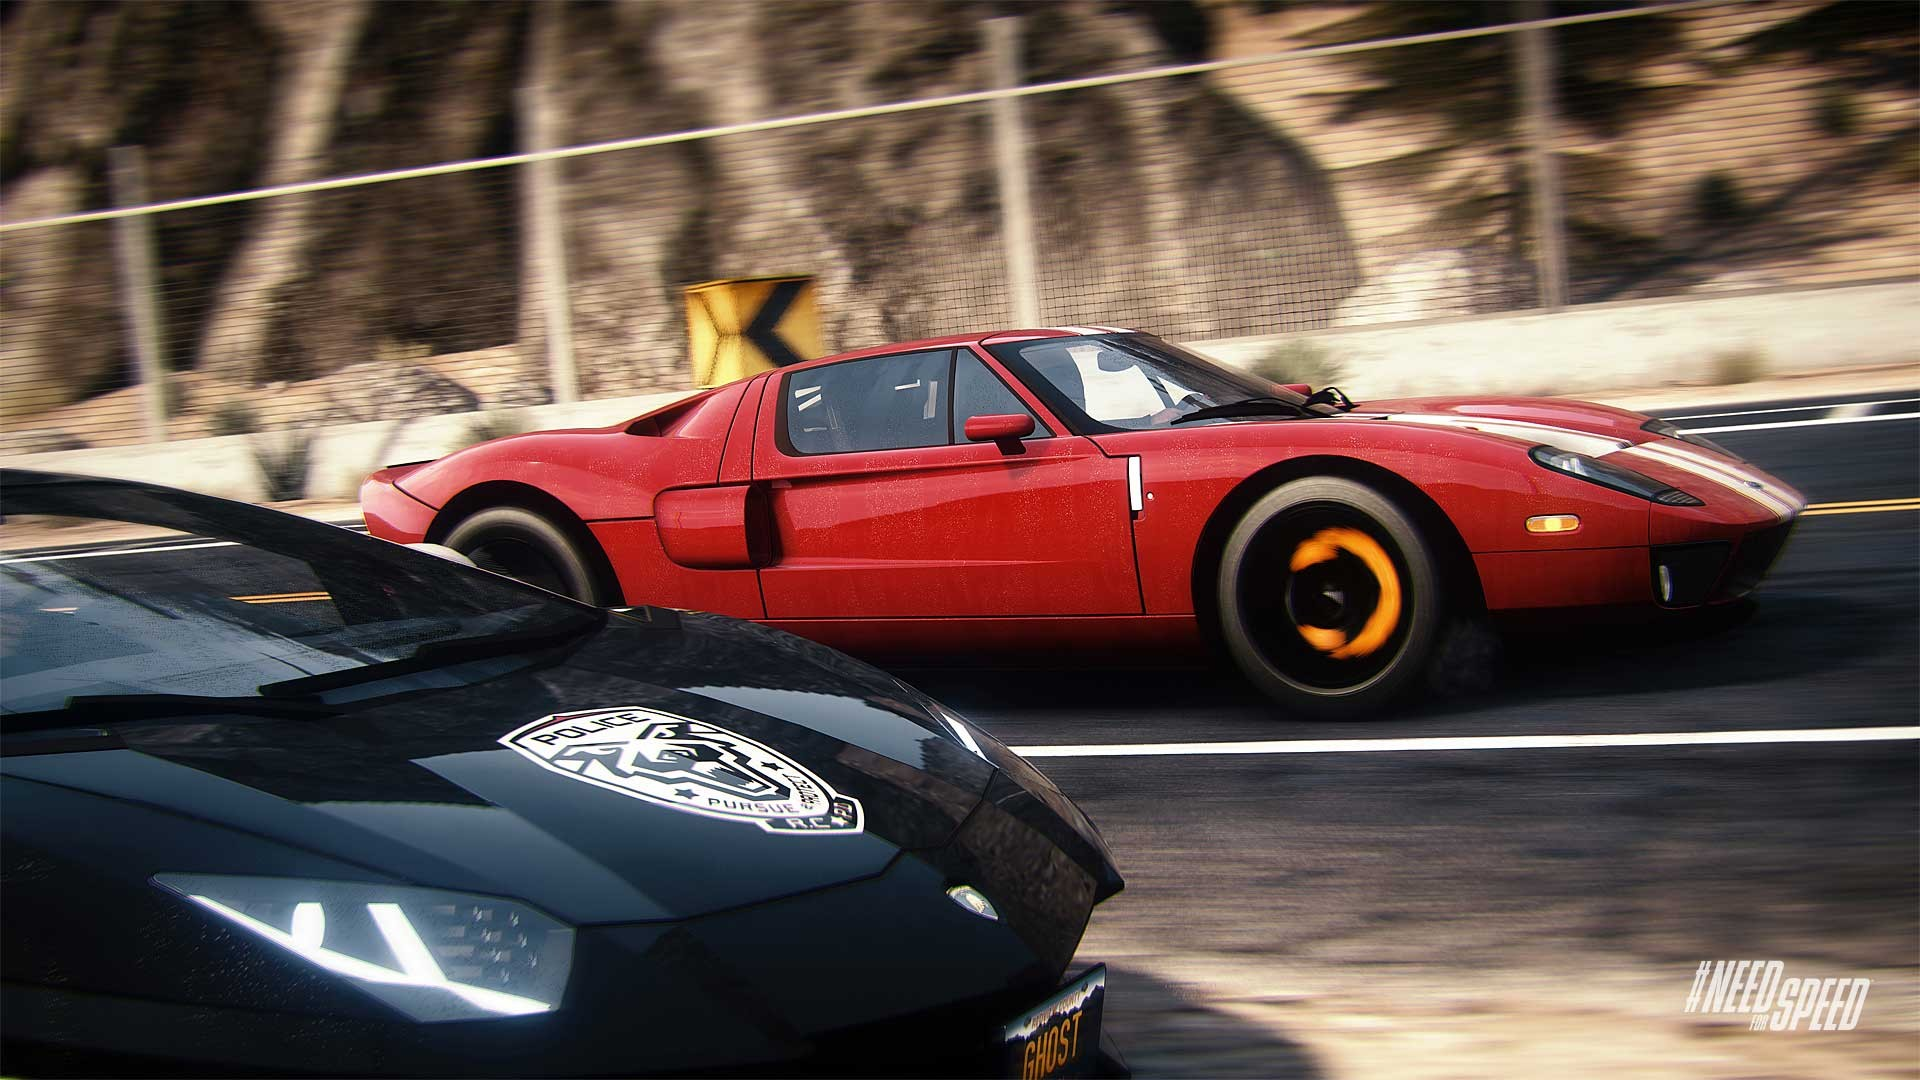 Nfs Most Wanted 2 Cars Wallpapers Need For Speed Rivals Hd Wallpaper Background Image